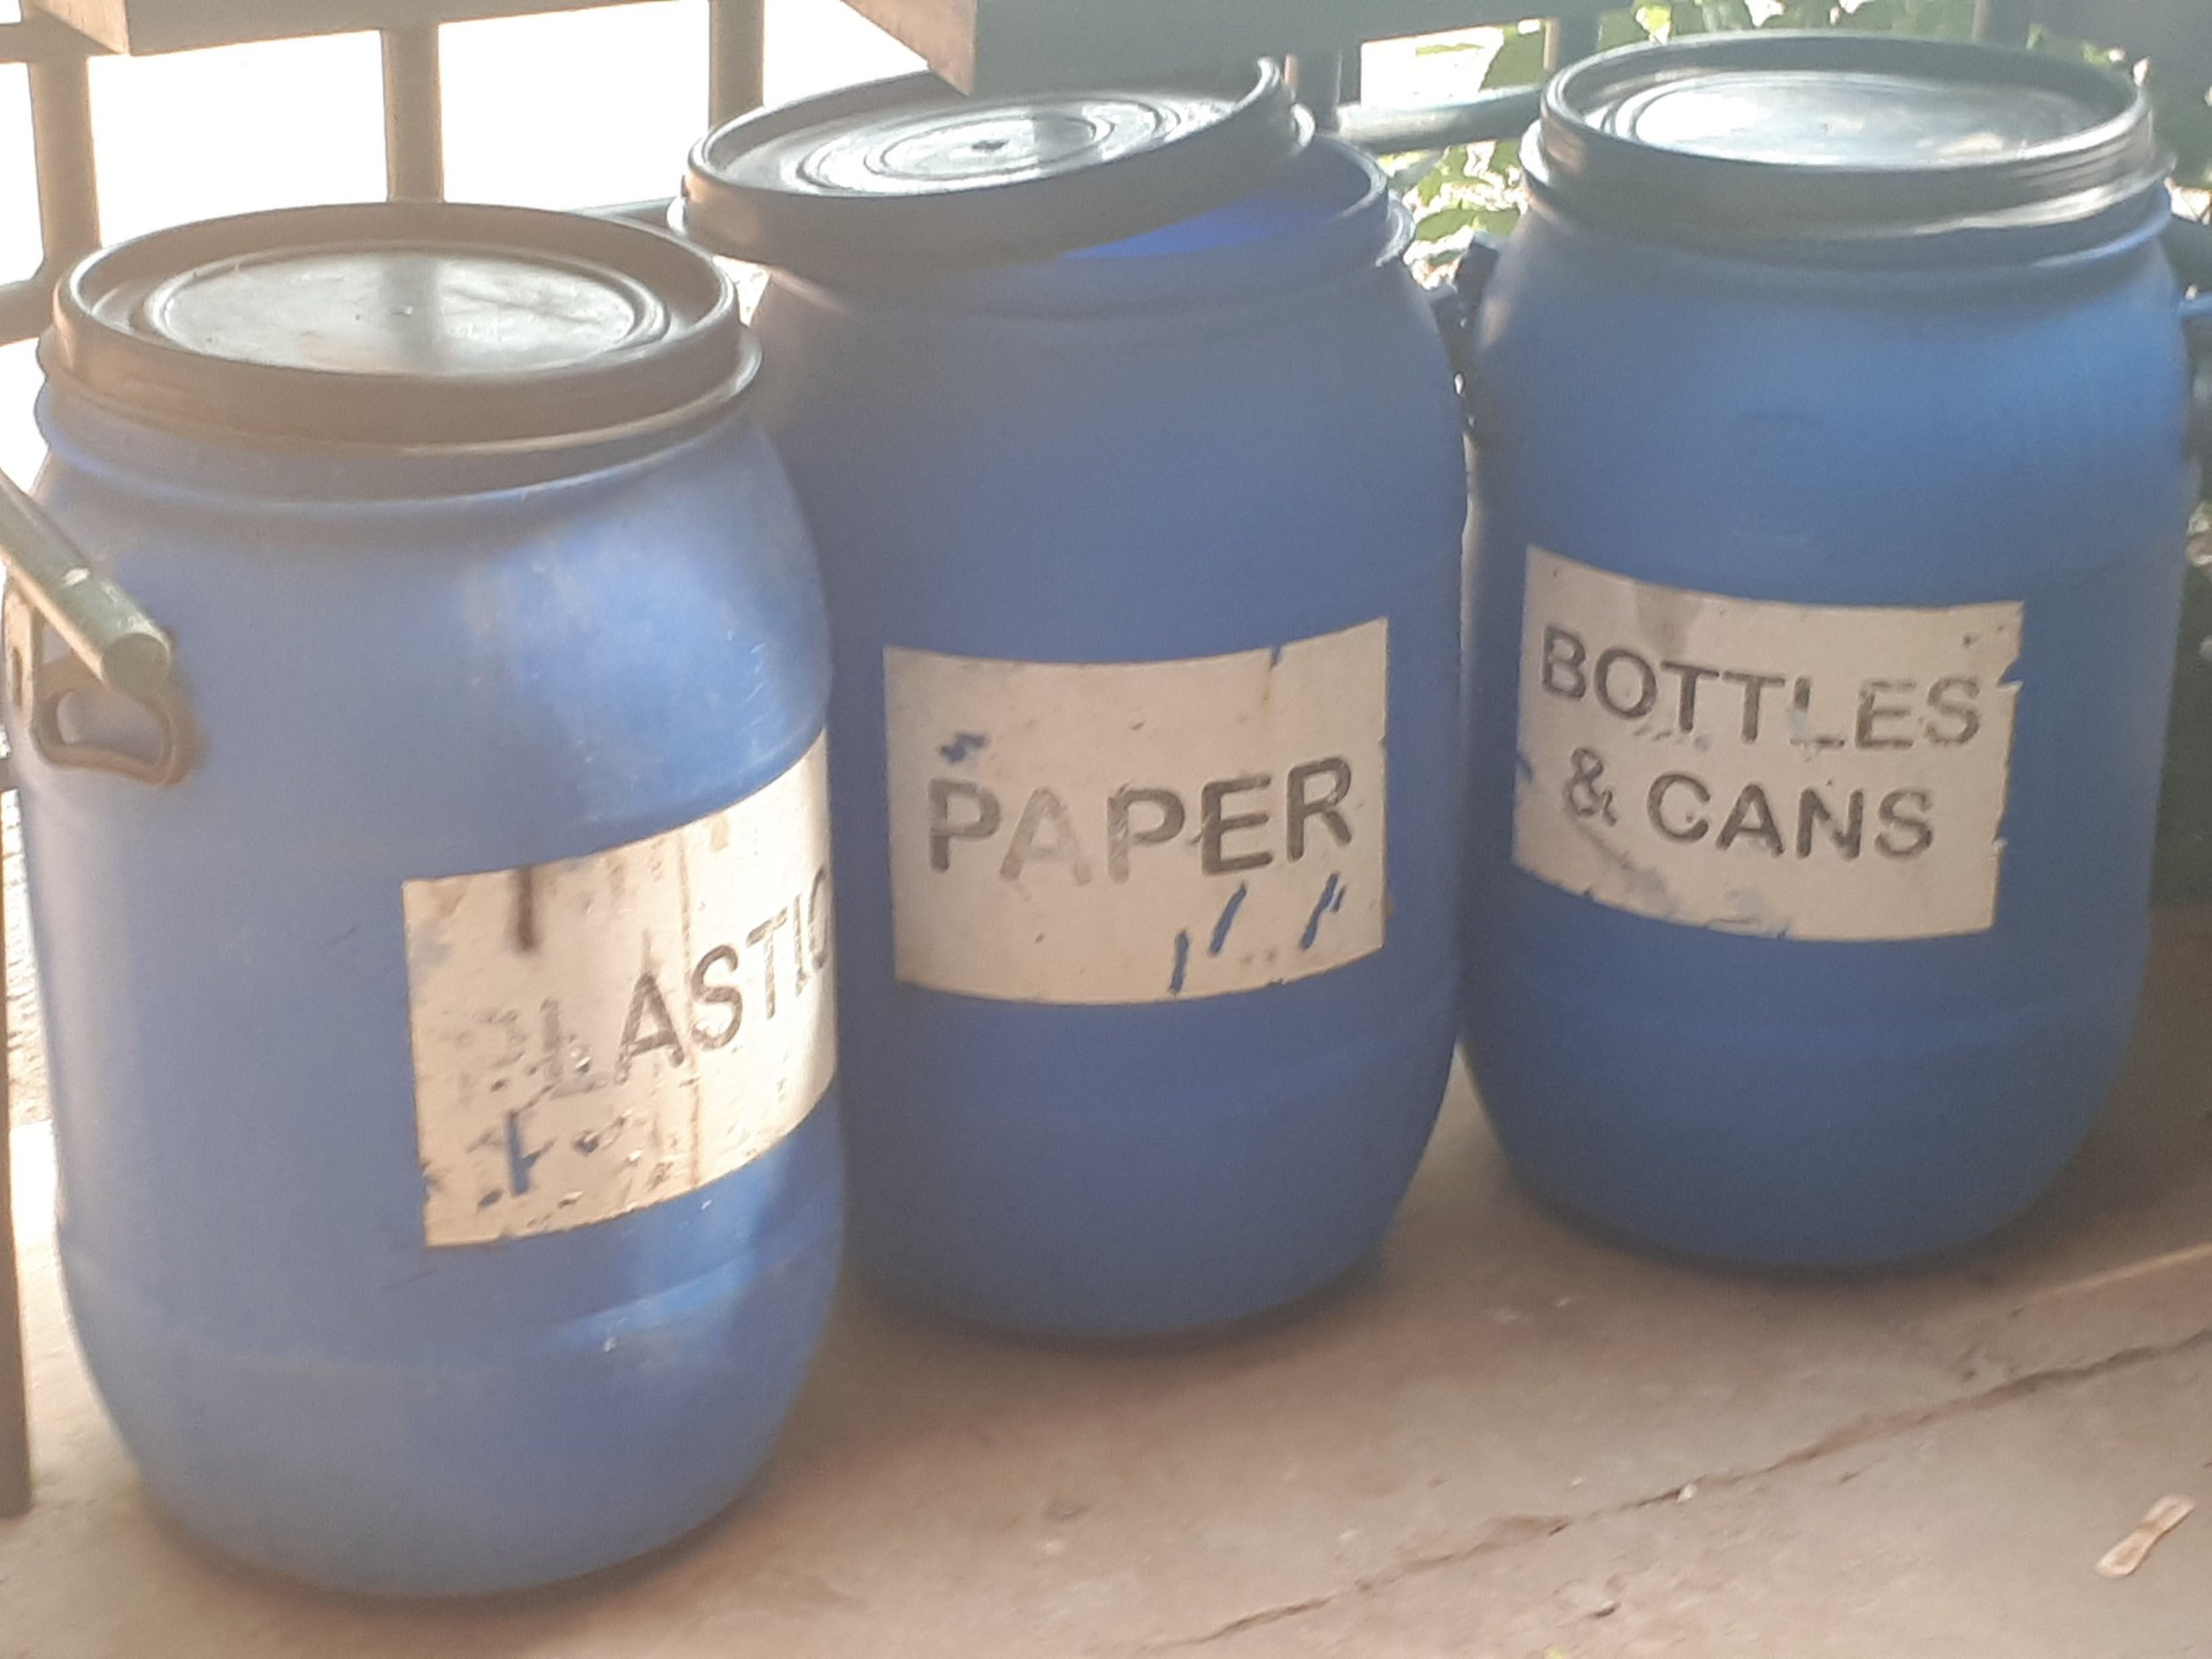 Recycling bins! We hope to implement the first multi-stream waste management system in the region, paving the way to positive change and healthier oceans!